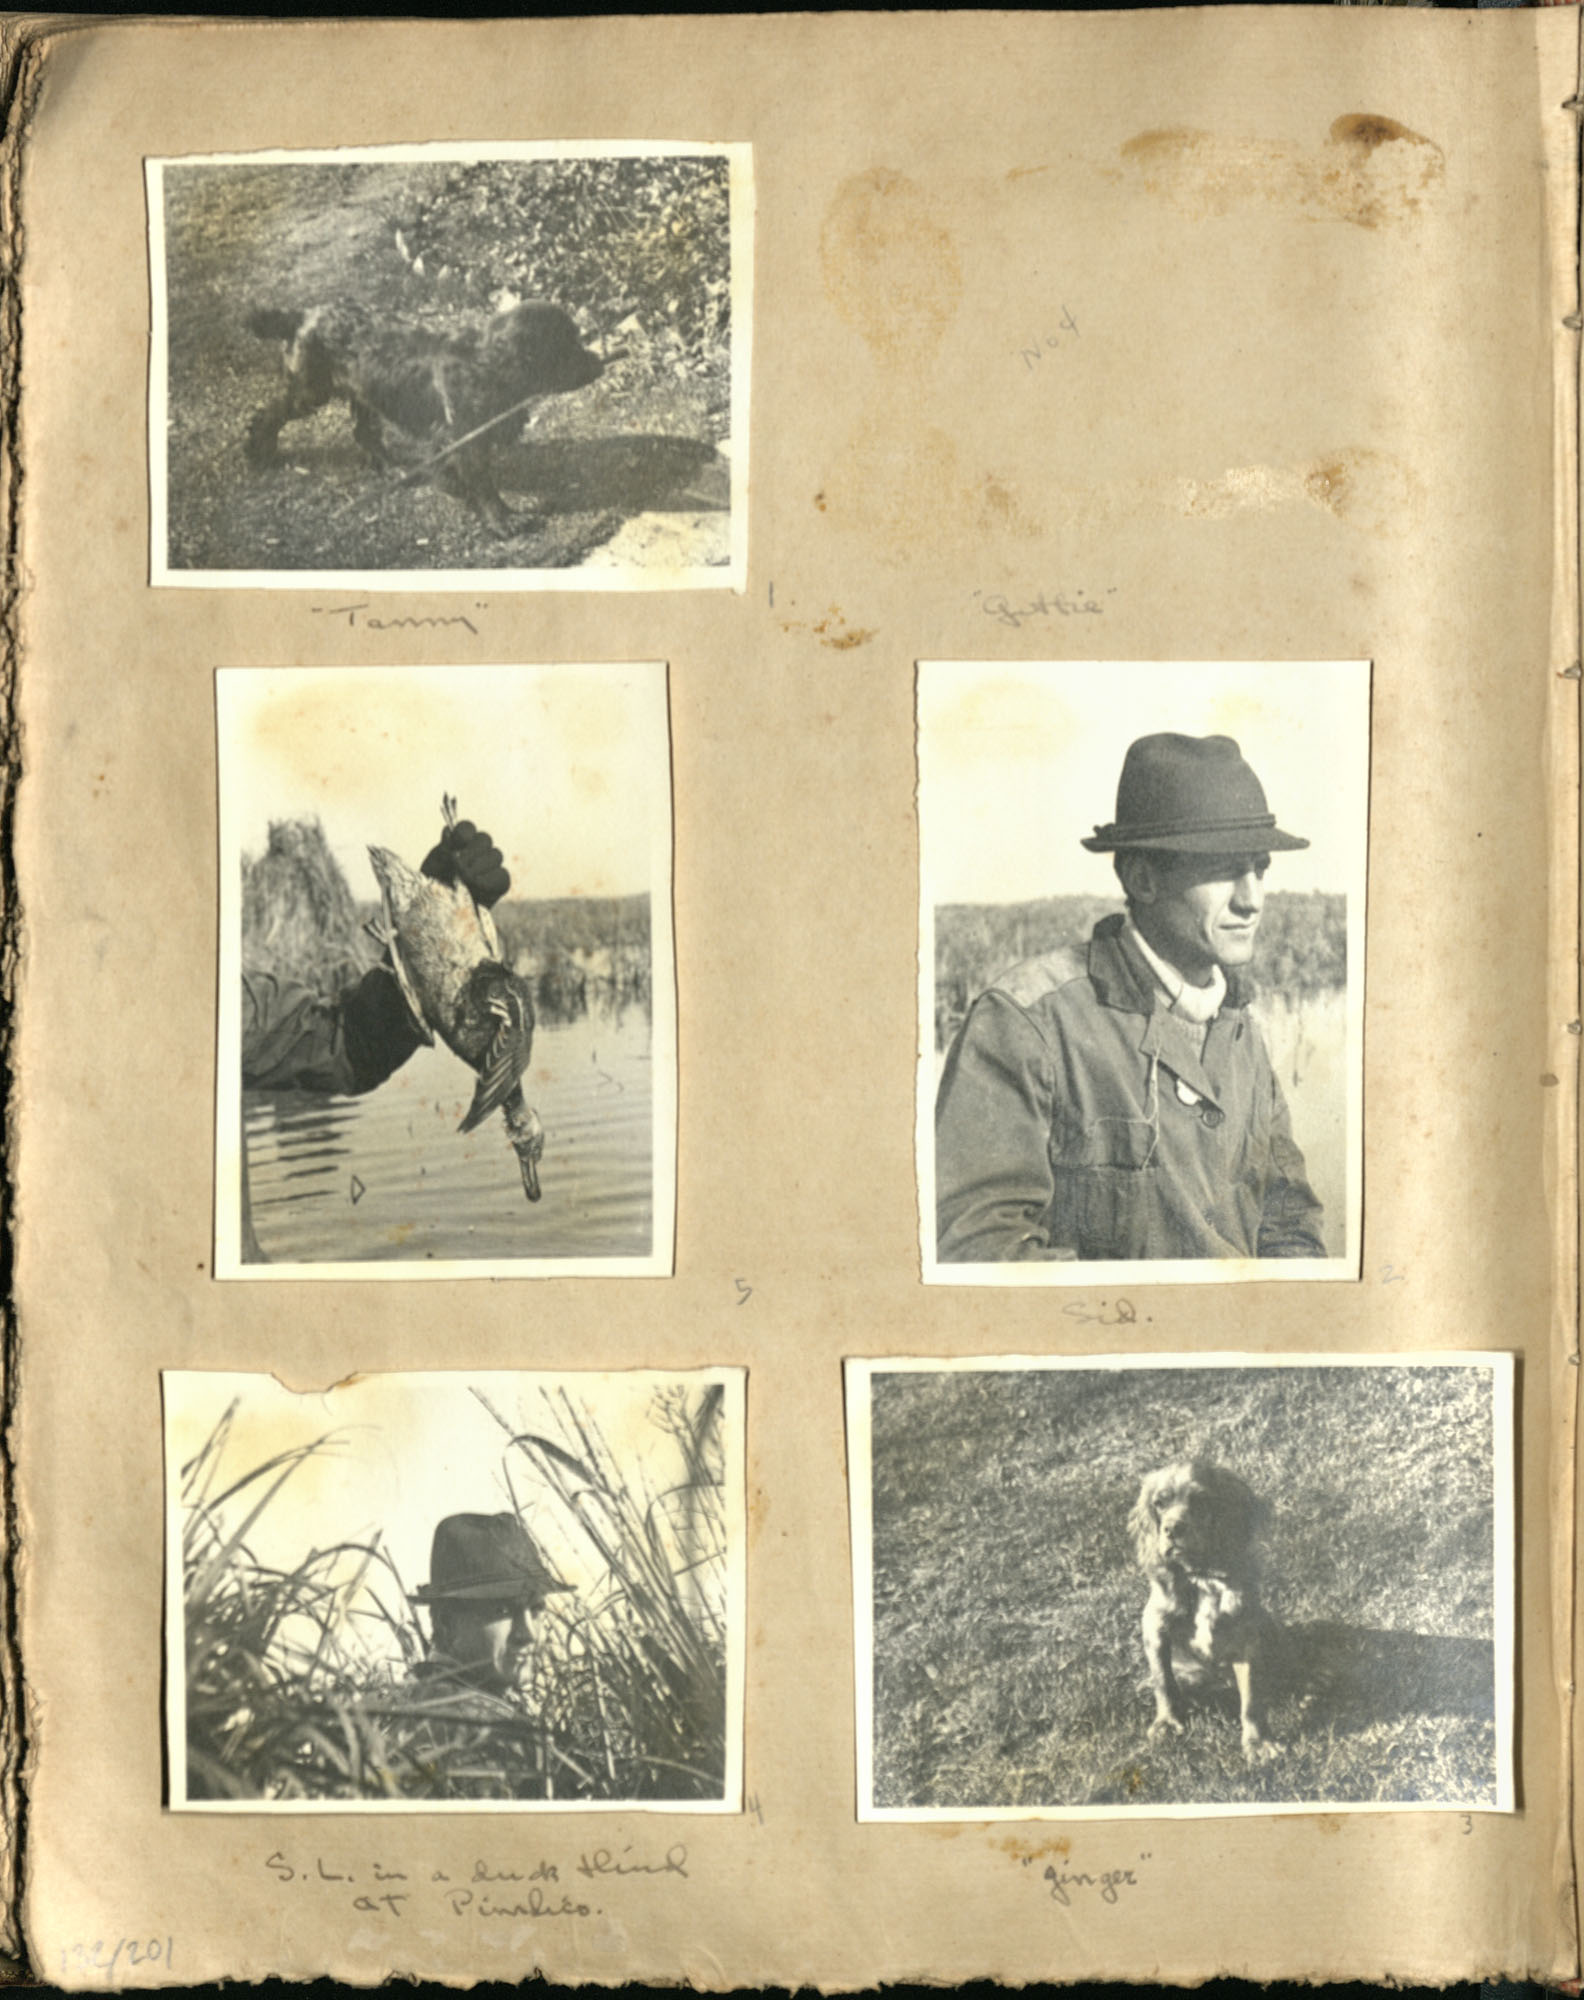 Early Medway and travels album, 1929-1937, page 132